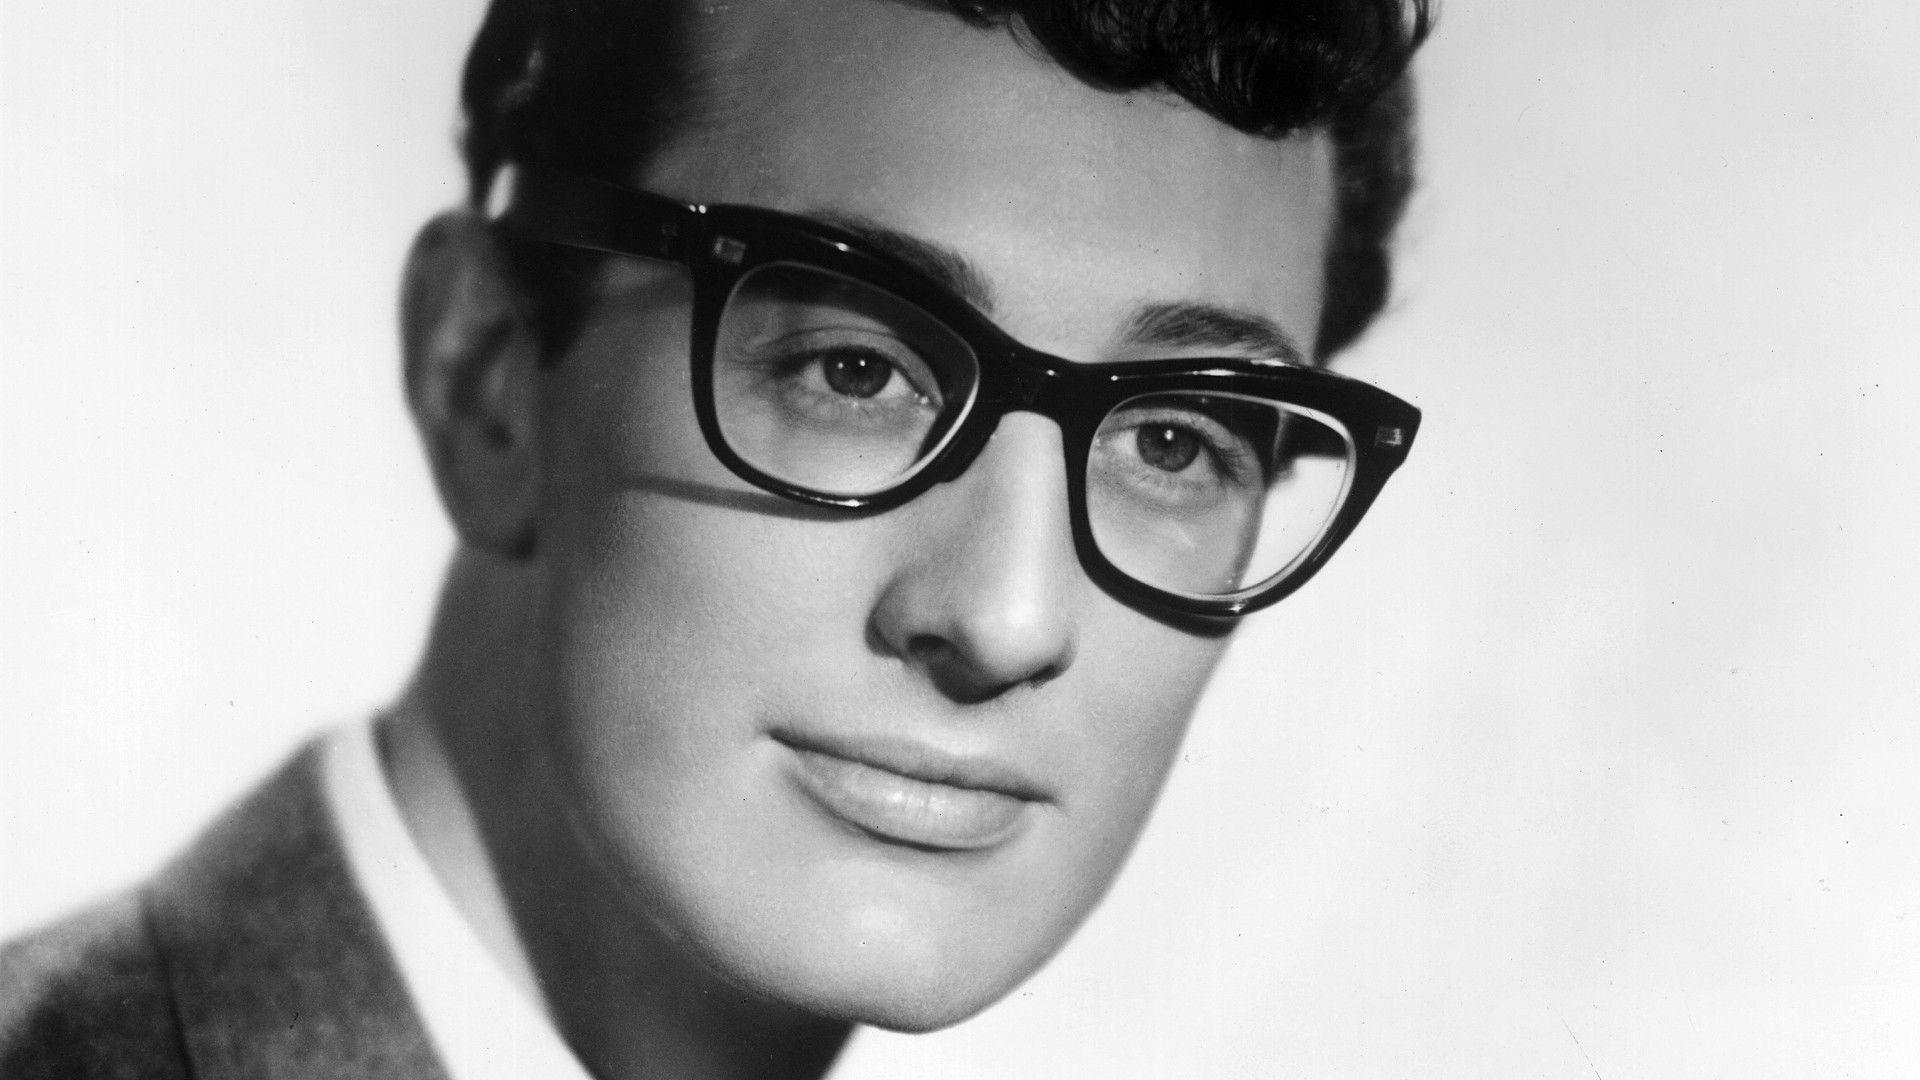 buddy holly wallpapers - wallpaper cave